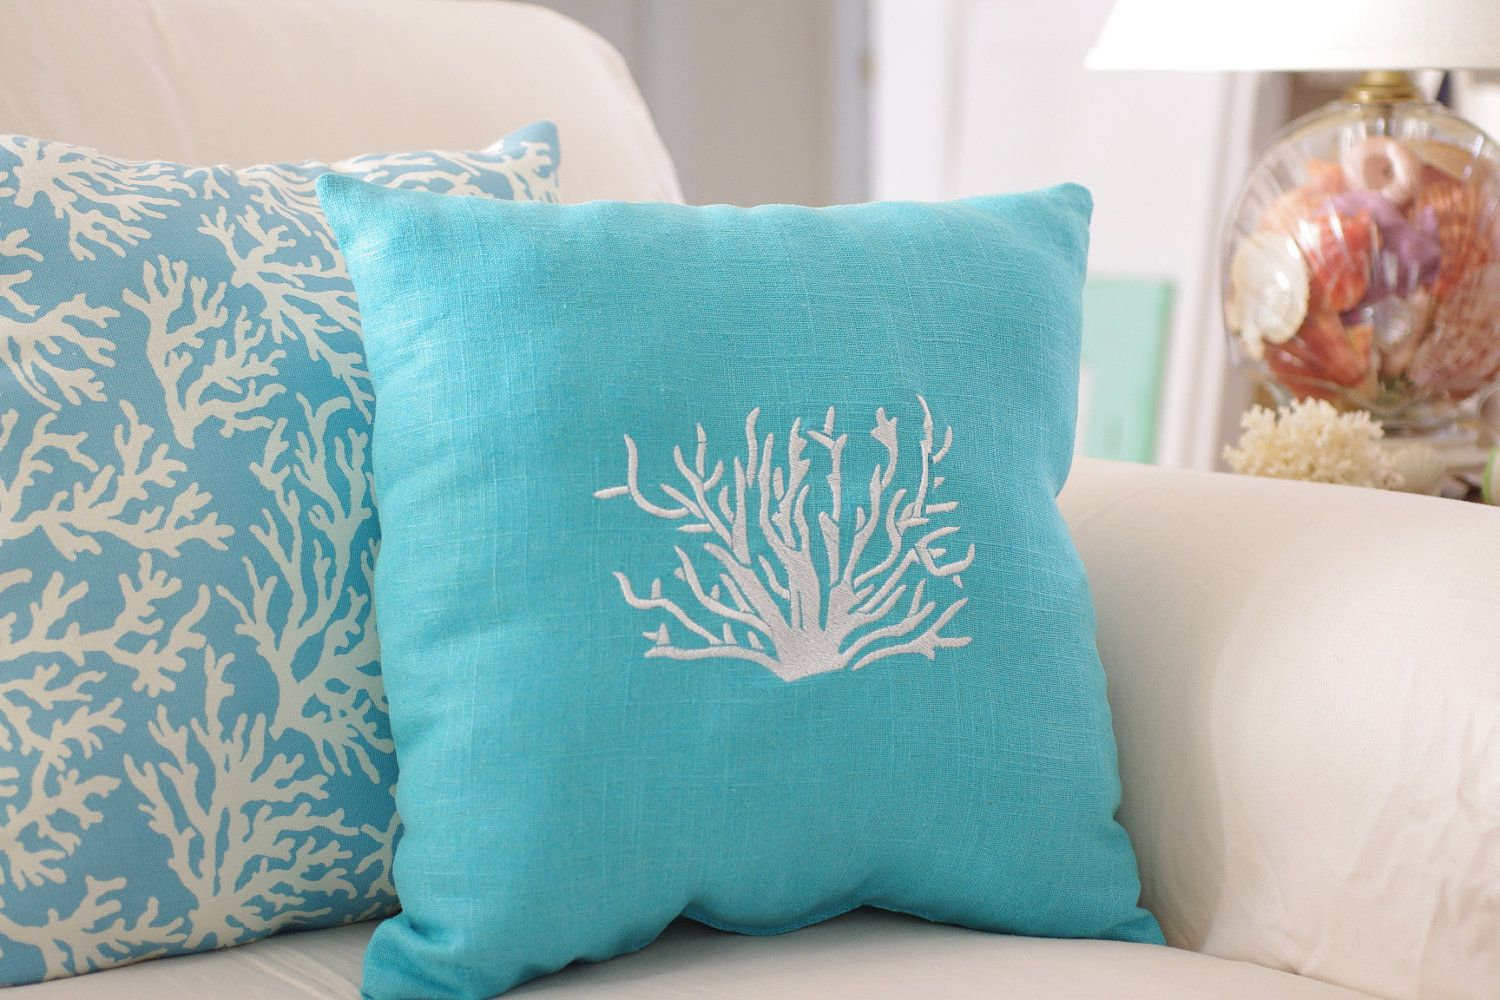 home beach pillows pin pillow outdoor collection coastal karen royalty robertson